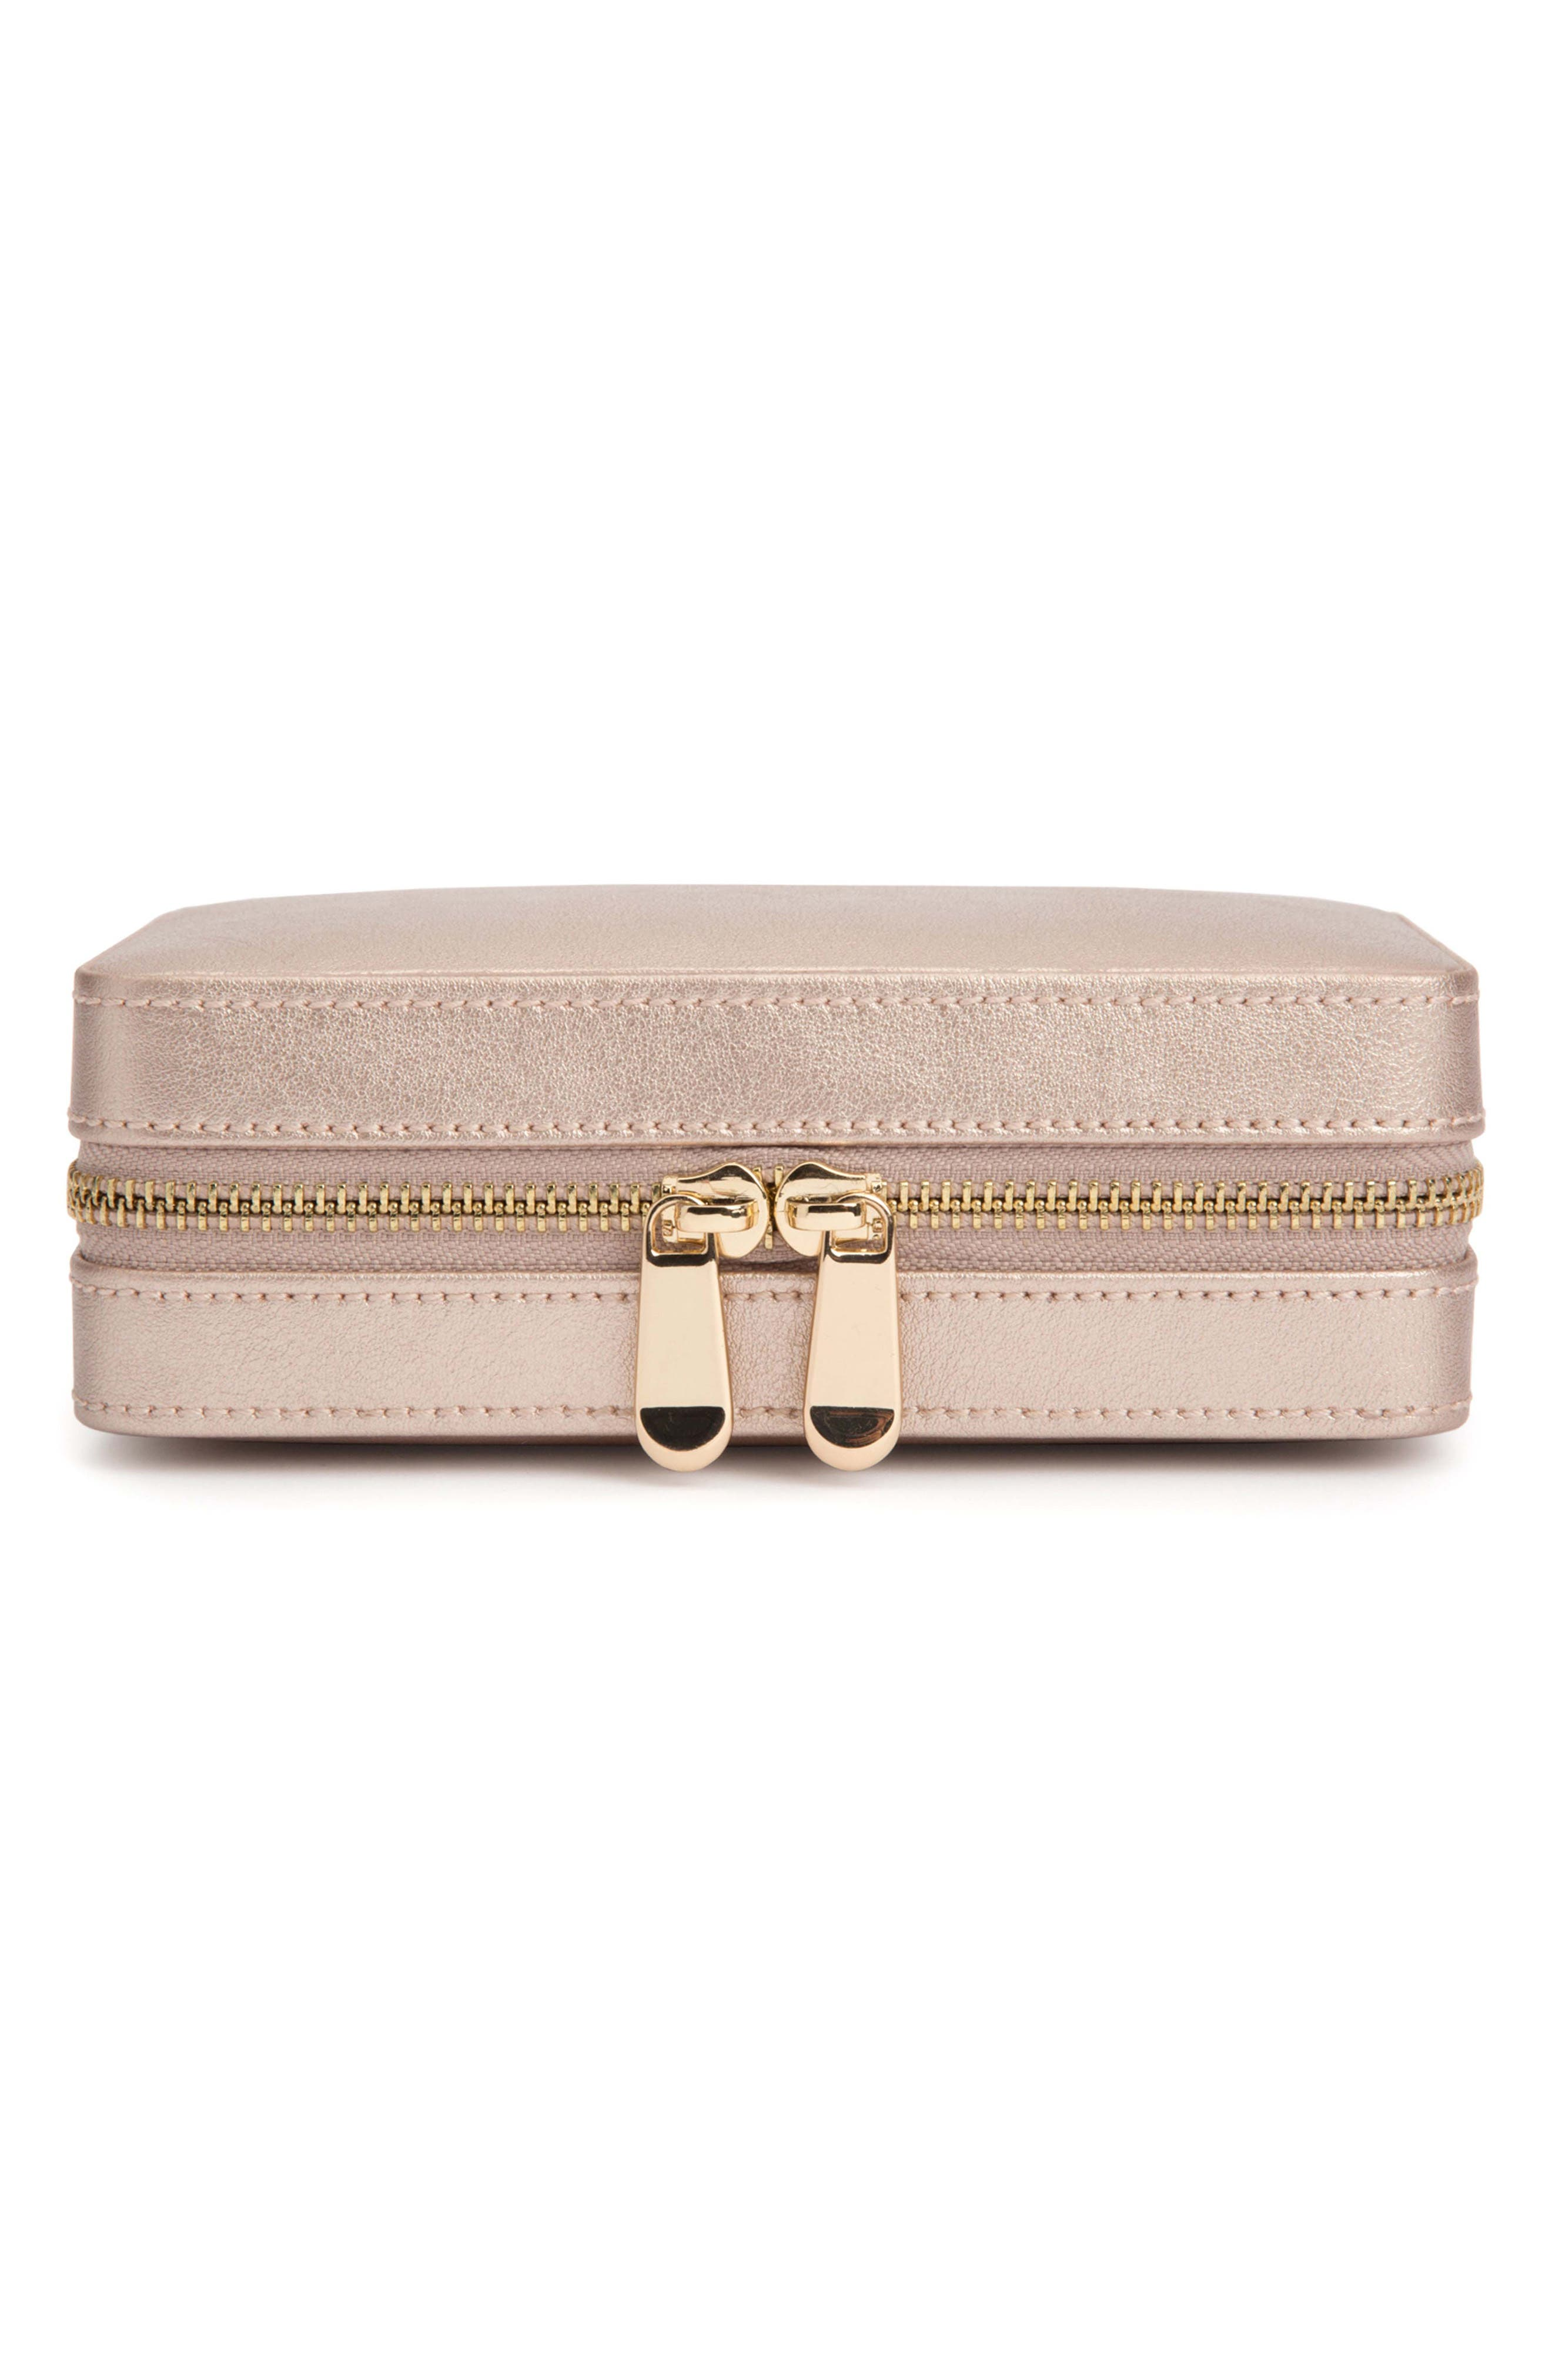 Palermo Zip Jewelry Case,                             Main thumbnail 1, color,                             ROSE GOLD